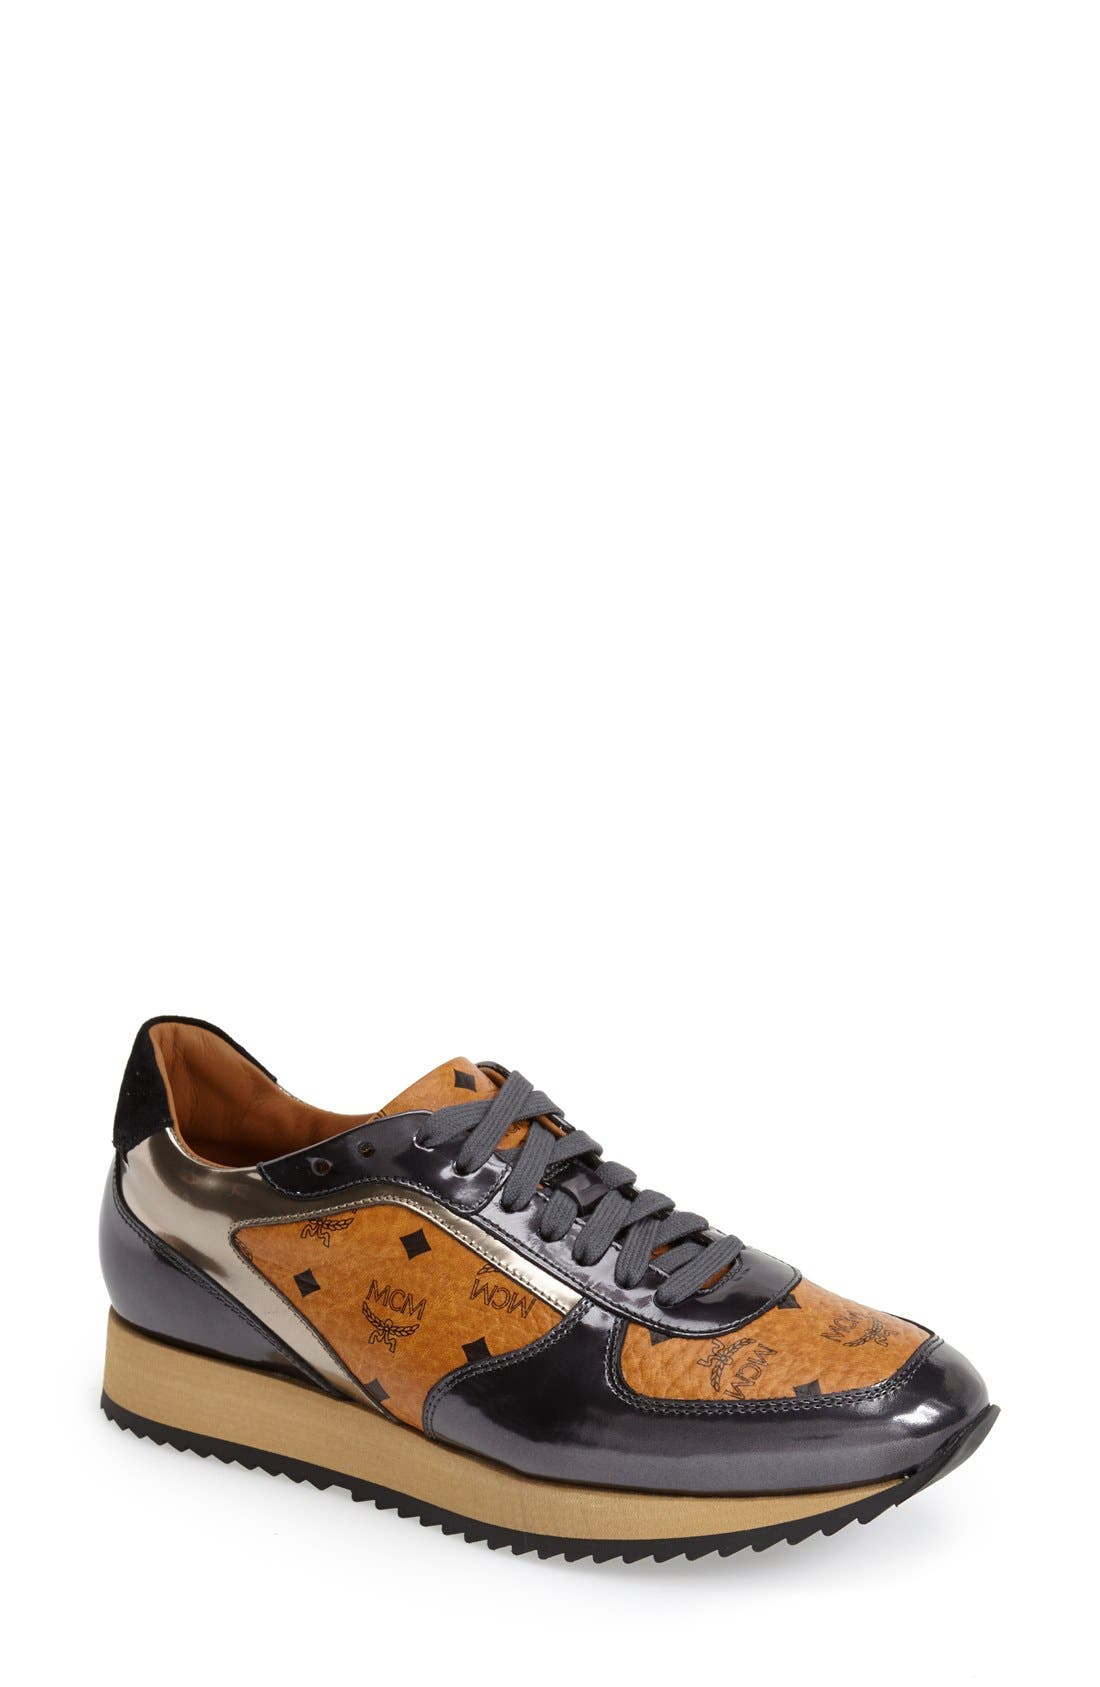 Alternate Image 1 Selected - MCM Coated Canvas & Leather Trainer (Women)